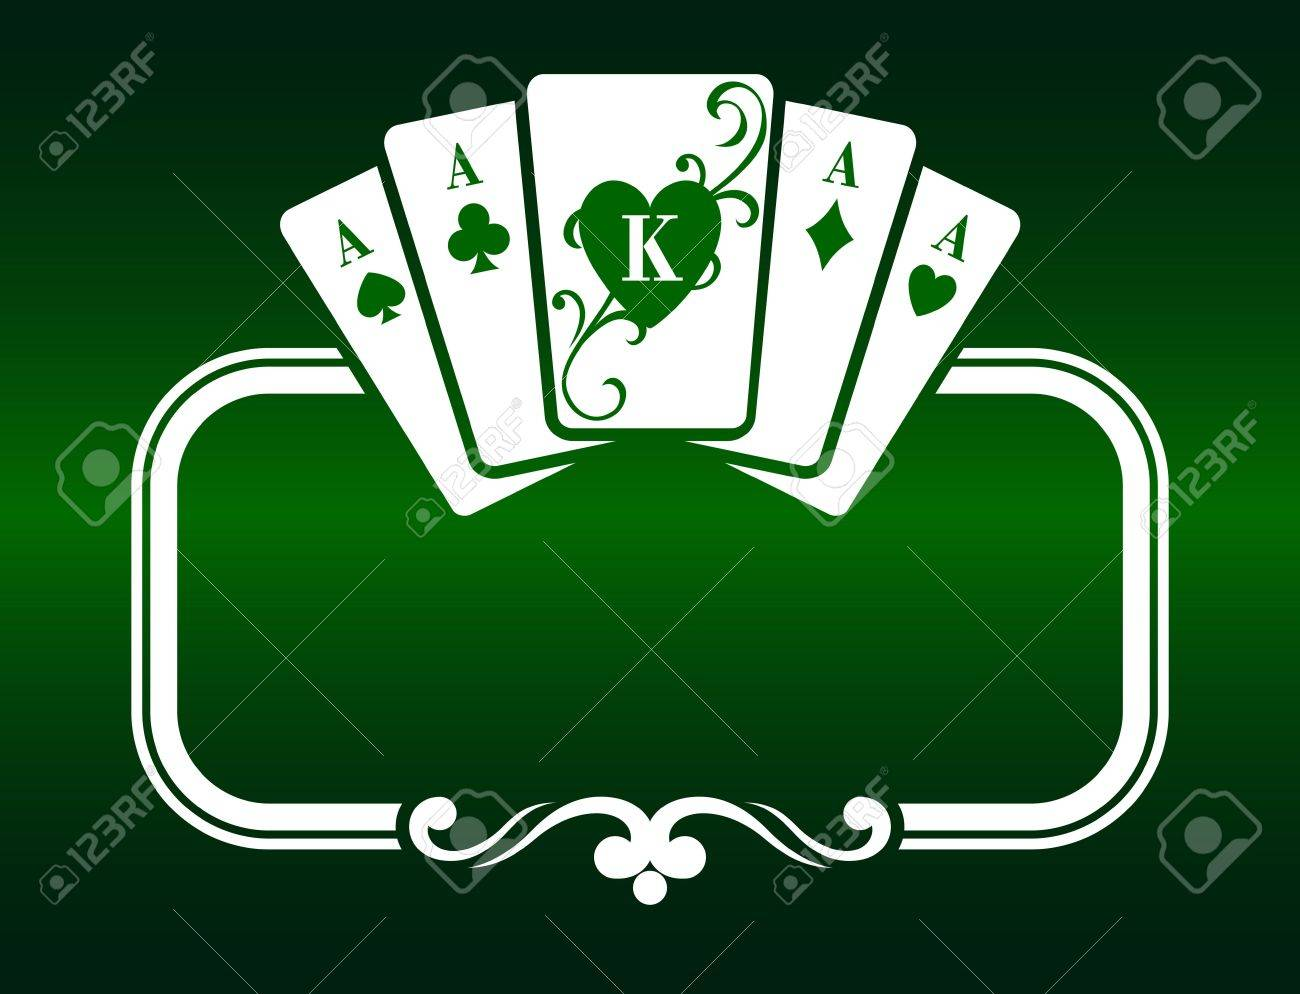 Poker frame with cards as a symbol of luck Stock Vector - 6696946